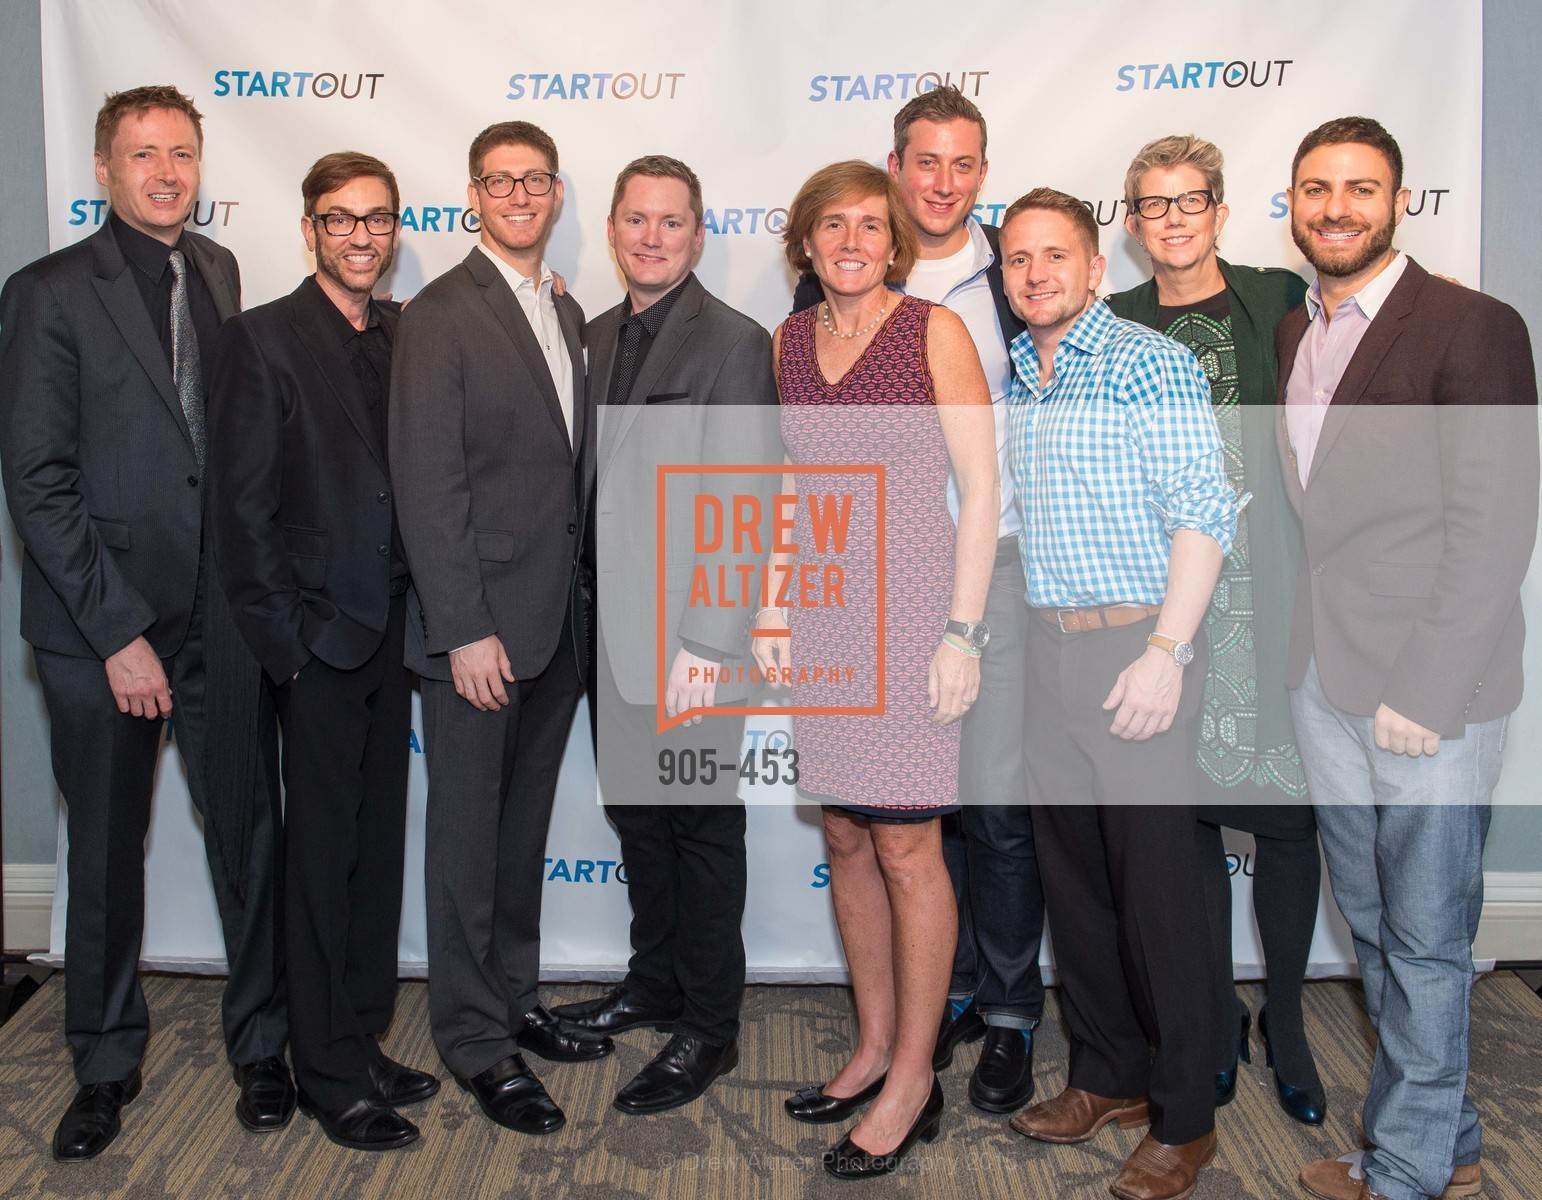 Michael Witbrock, Chris Sinton, Lorenzo Thione, Patrick Grosso, Carla McKay, Michael Berl, James Bain, Mary Shea, Joe Dipasquale, The 2015 StartOut Awards, Kabuki Hotel. 2525 Van Ness St, November 5th, 2015,Drew Altizer, Drew Altizer Photography, full-service agency, private events, San Francisco photographer, photographer california